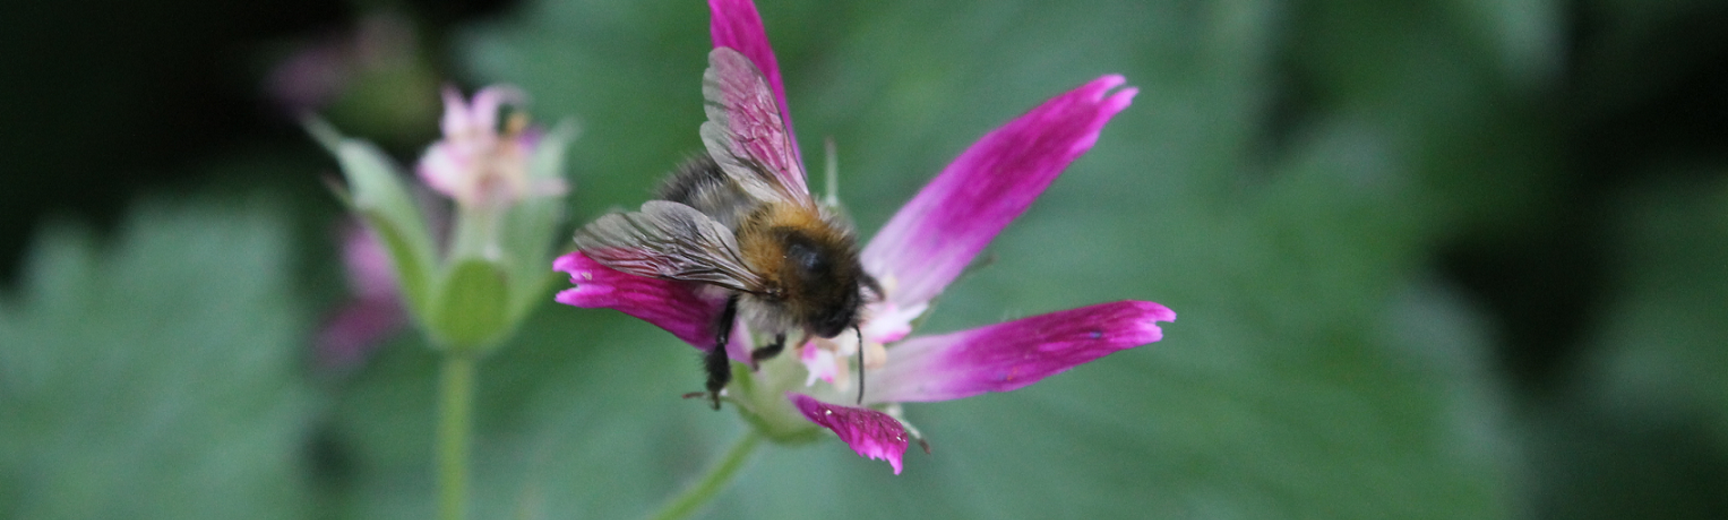 Bee on pink flower - photograph by Vikki Rose, Global Environmental Advisor (C Env MIEMA)